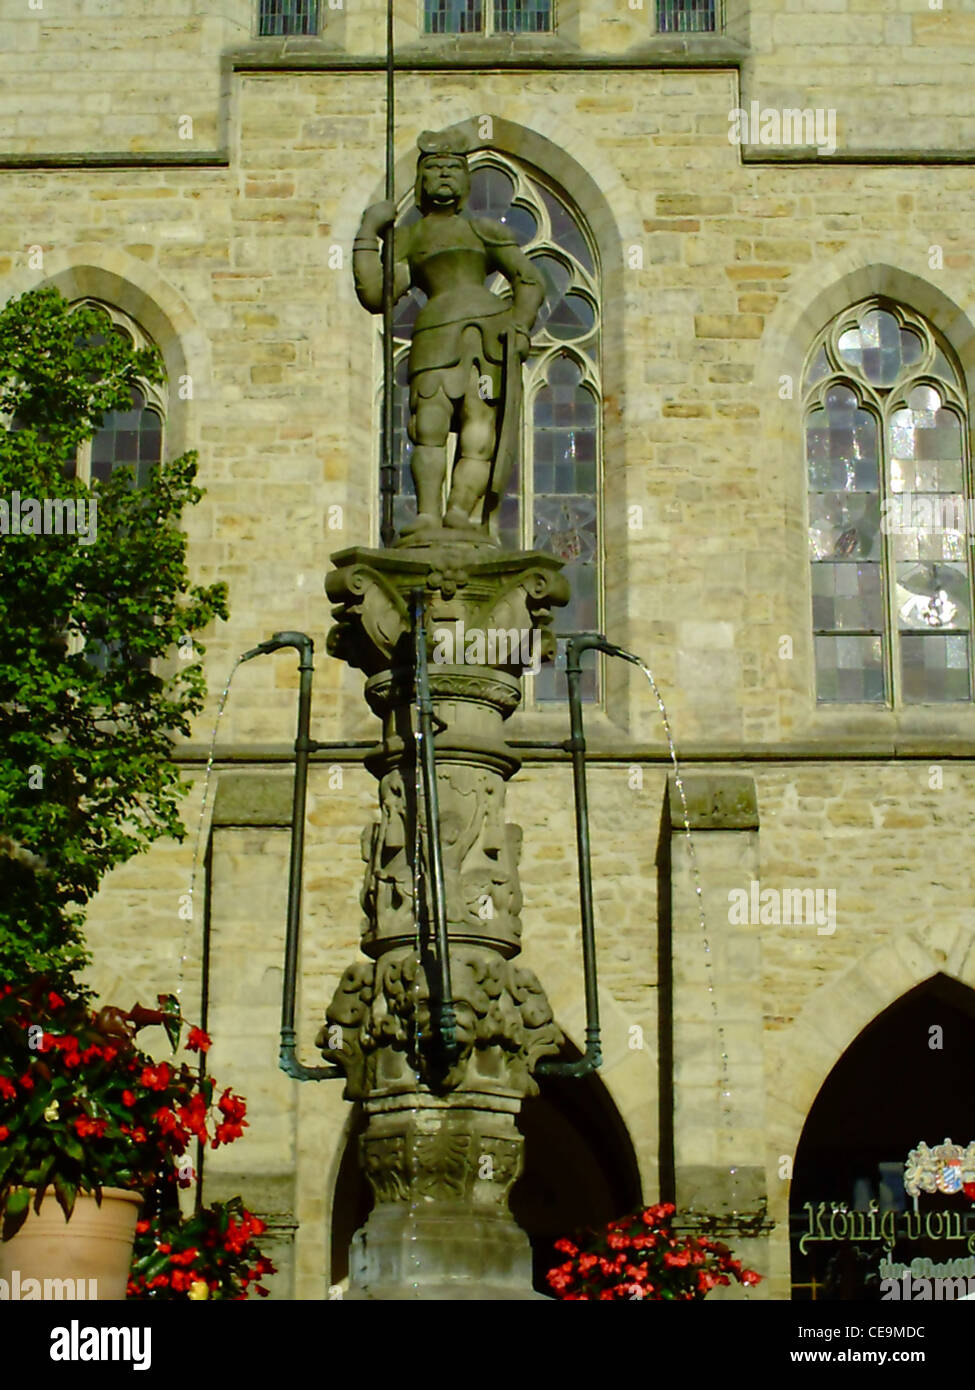 A figure of the Roland fountain on the central market place of Hildesheim in Germany - Stock Image